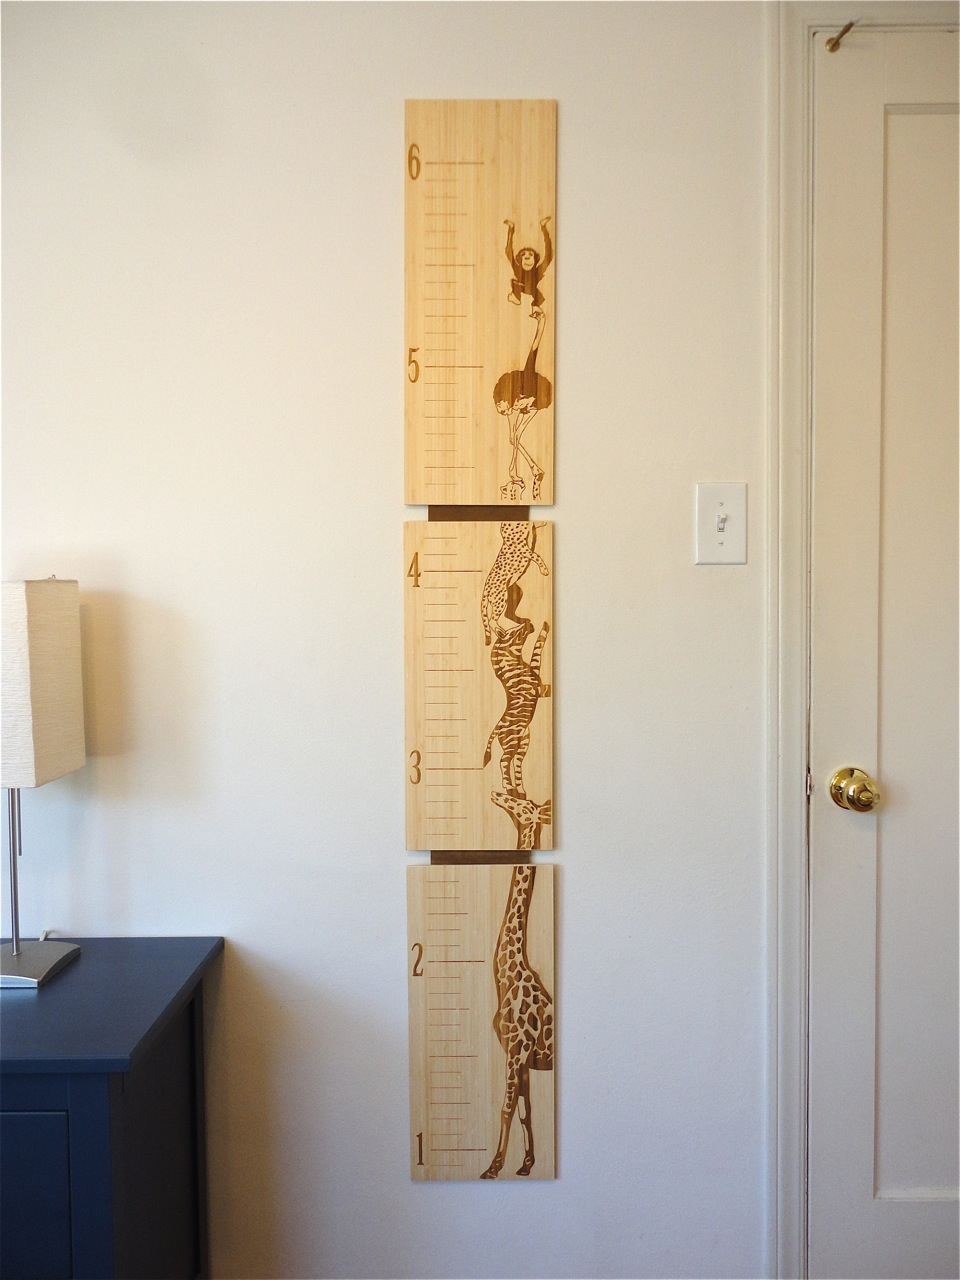 Bamboo growth chart for kids by robby cuthbert. Laser etched with the option of customizing by adding your child's name! This design features stacked animals with the topmost monkey holding you kid's name!